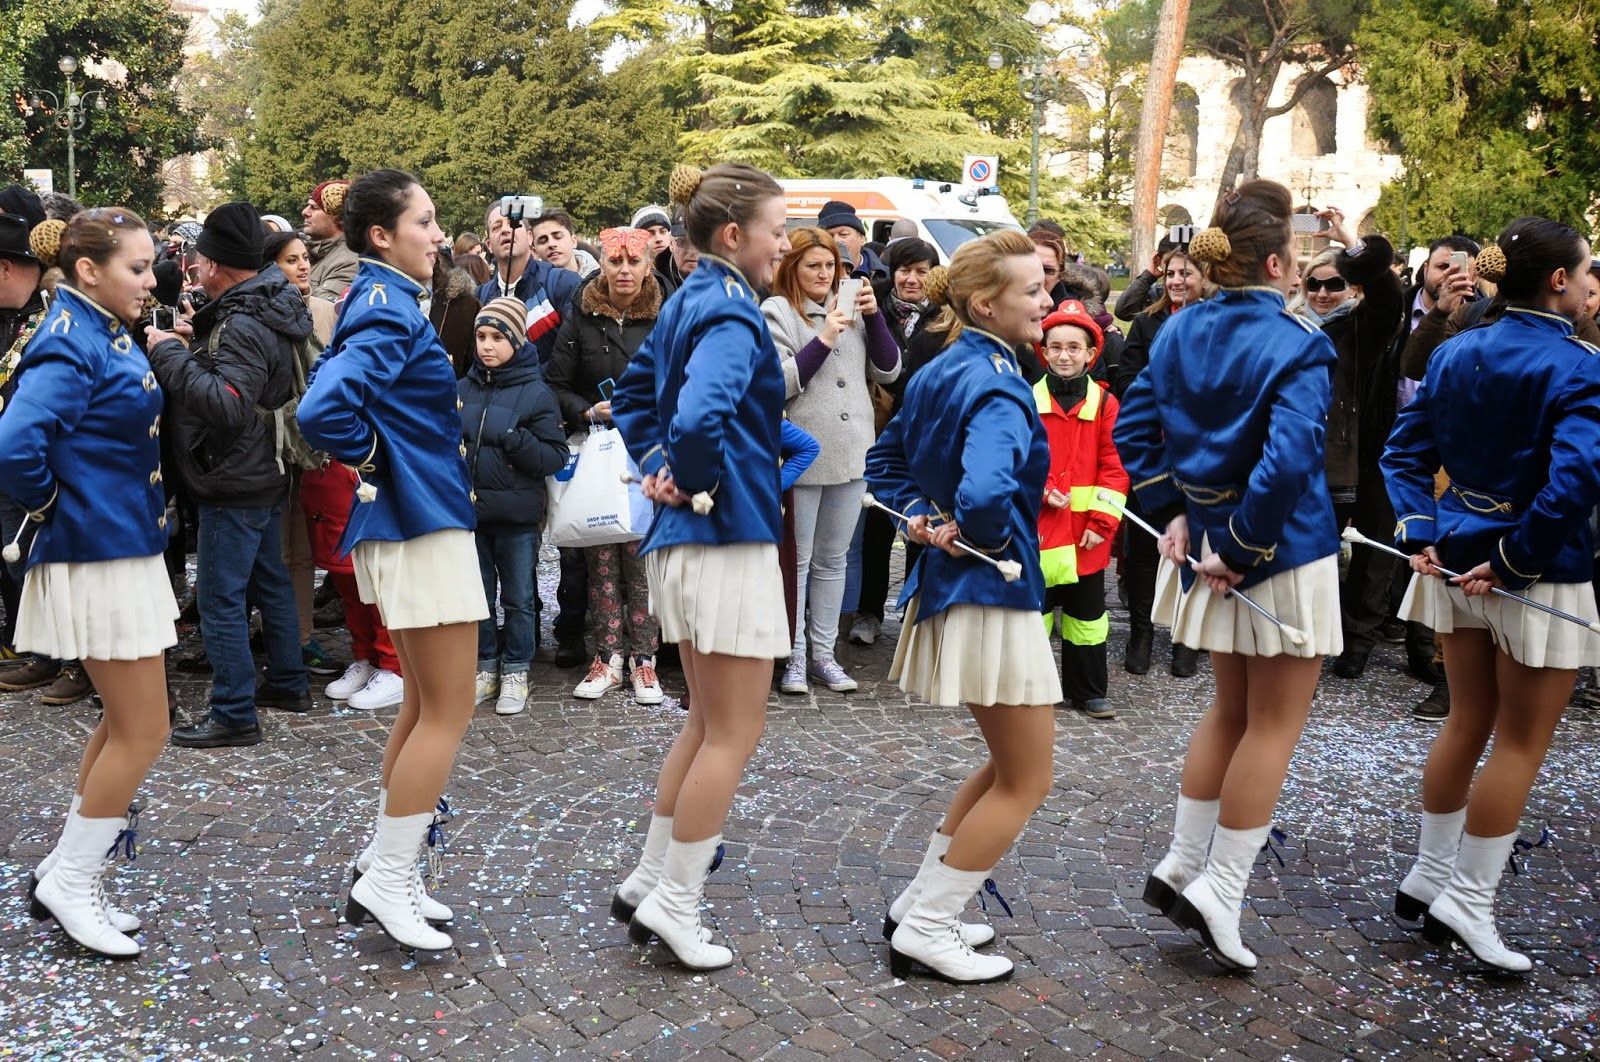 Majorettes dancing at the parade at Verona Carnival